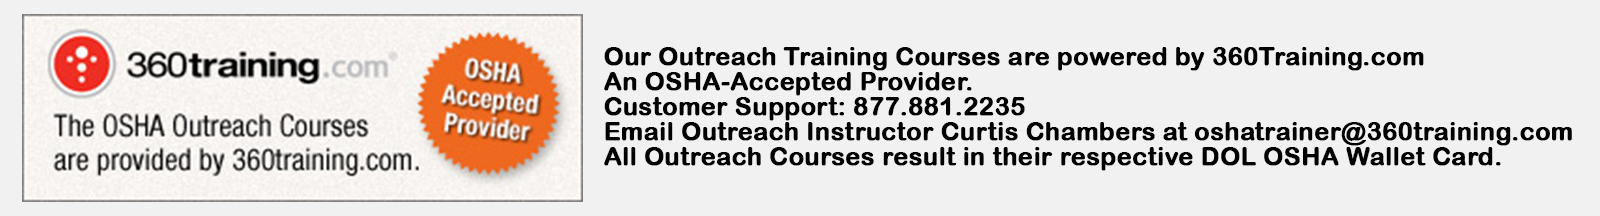 outreach-training-notice